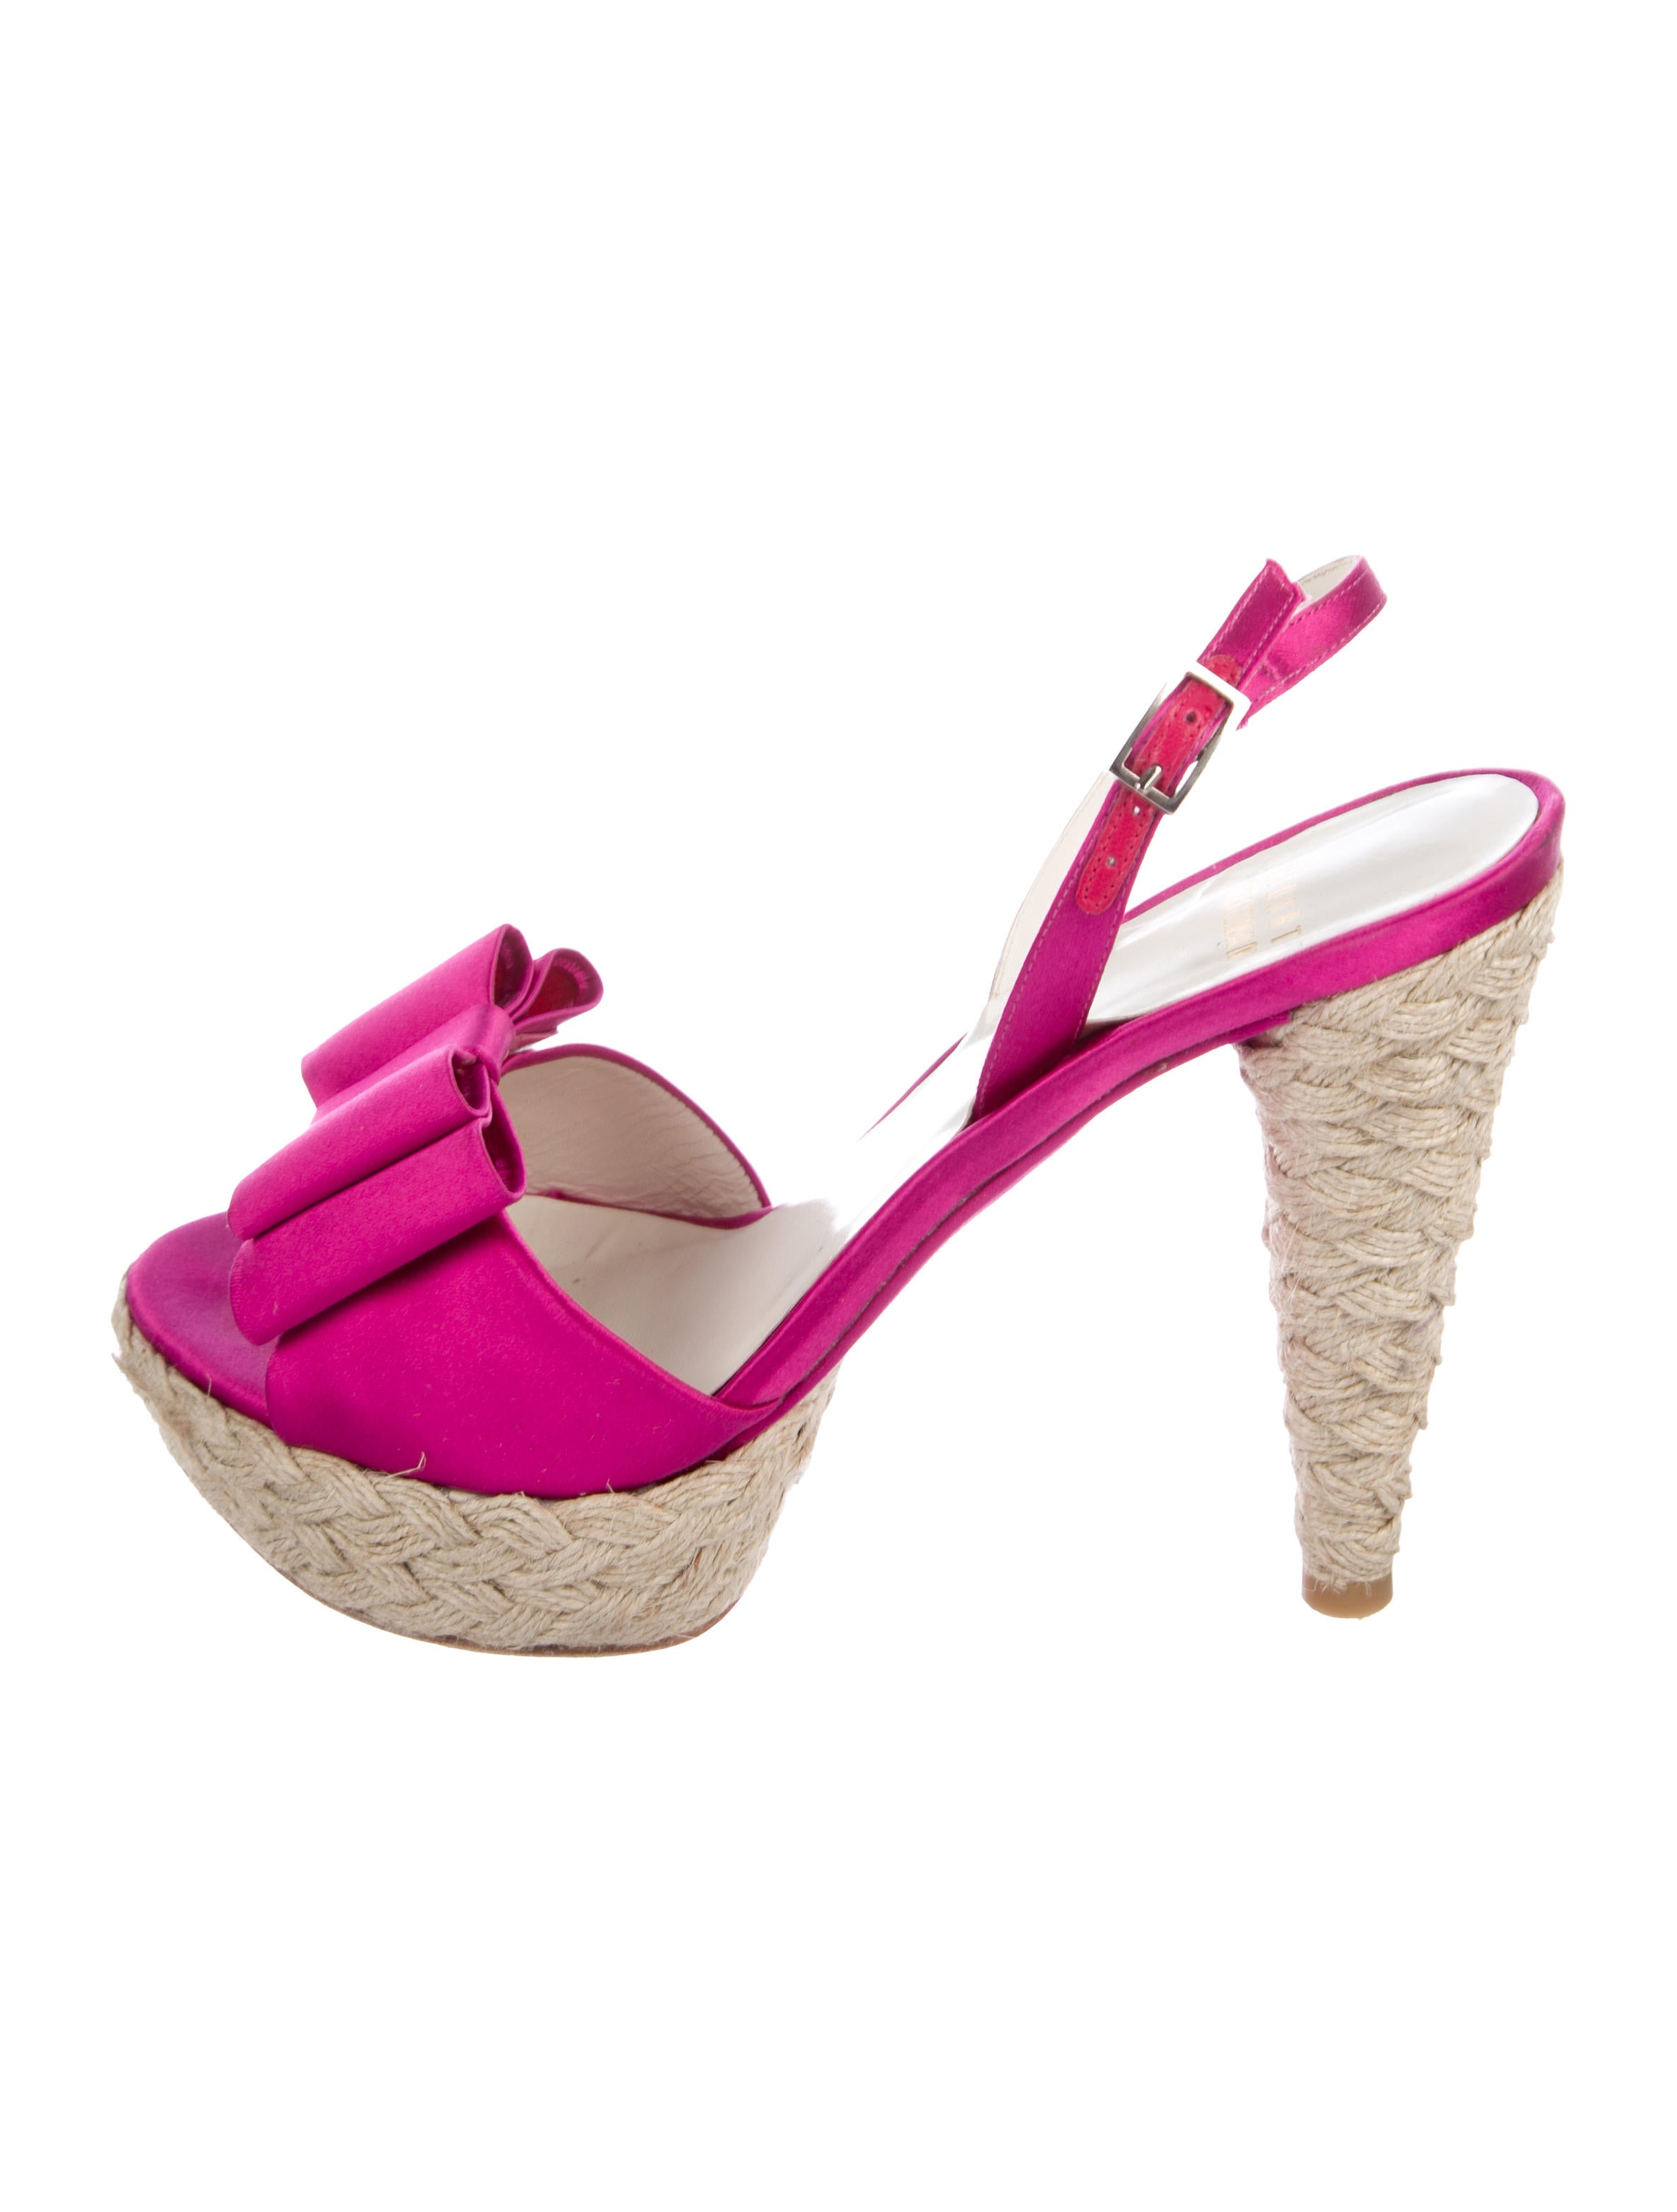 Stuart Weitzman Bogus Satin Sandals outlet online clearance online official site buy cheap comfortable outlet with paypal order 5qNfpA